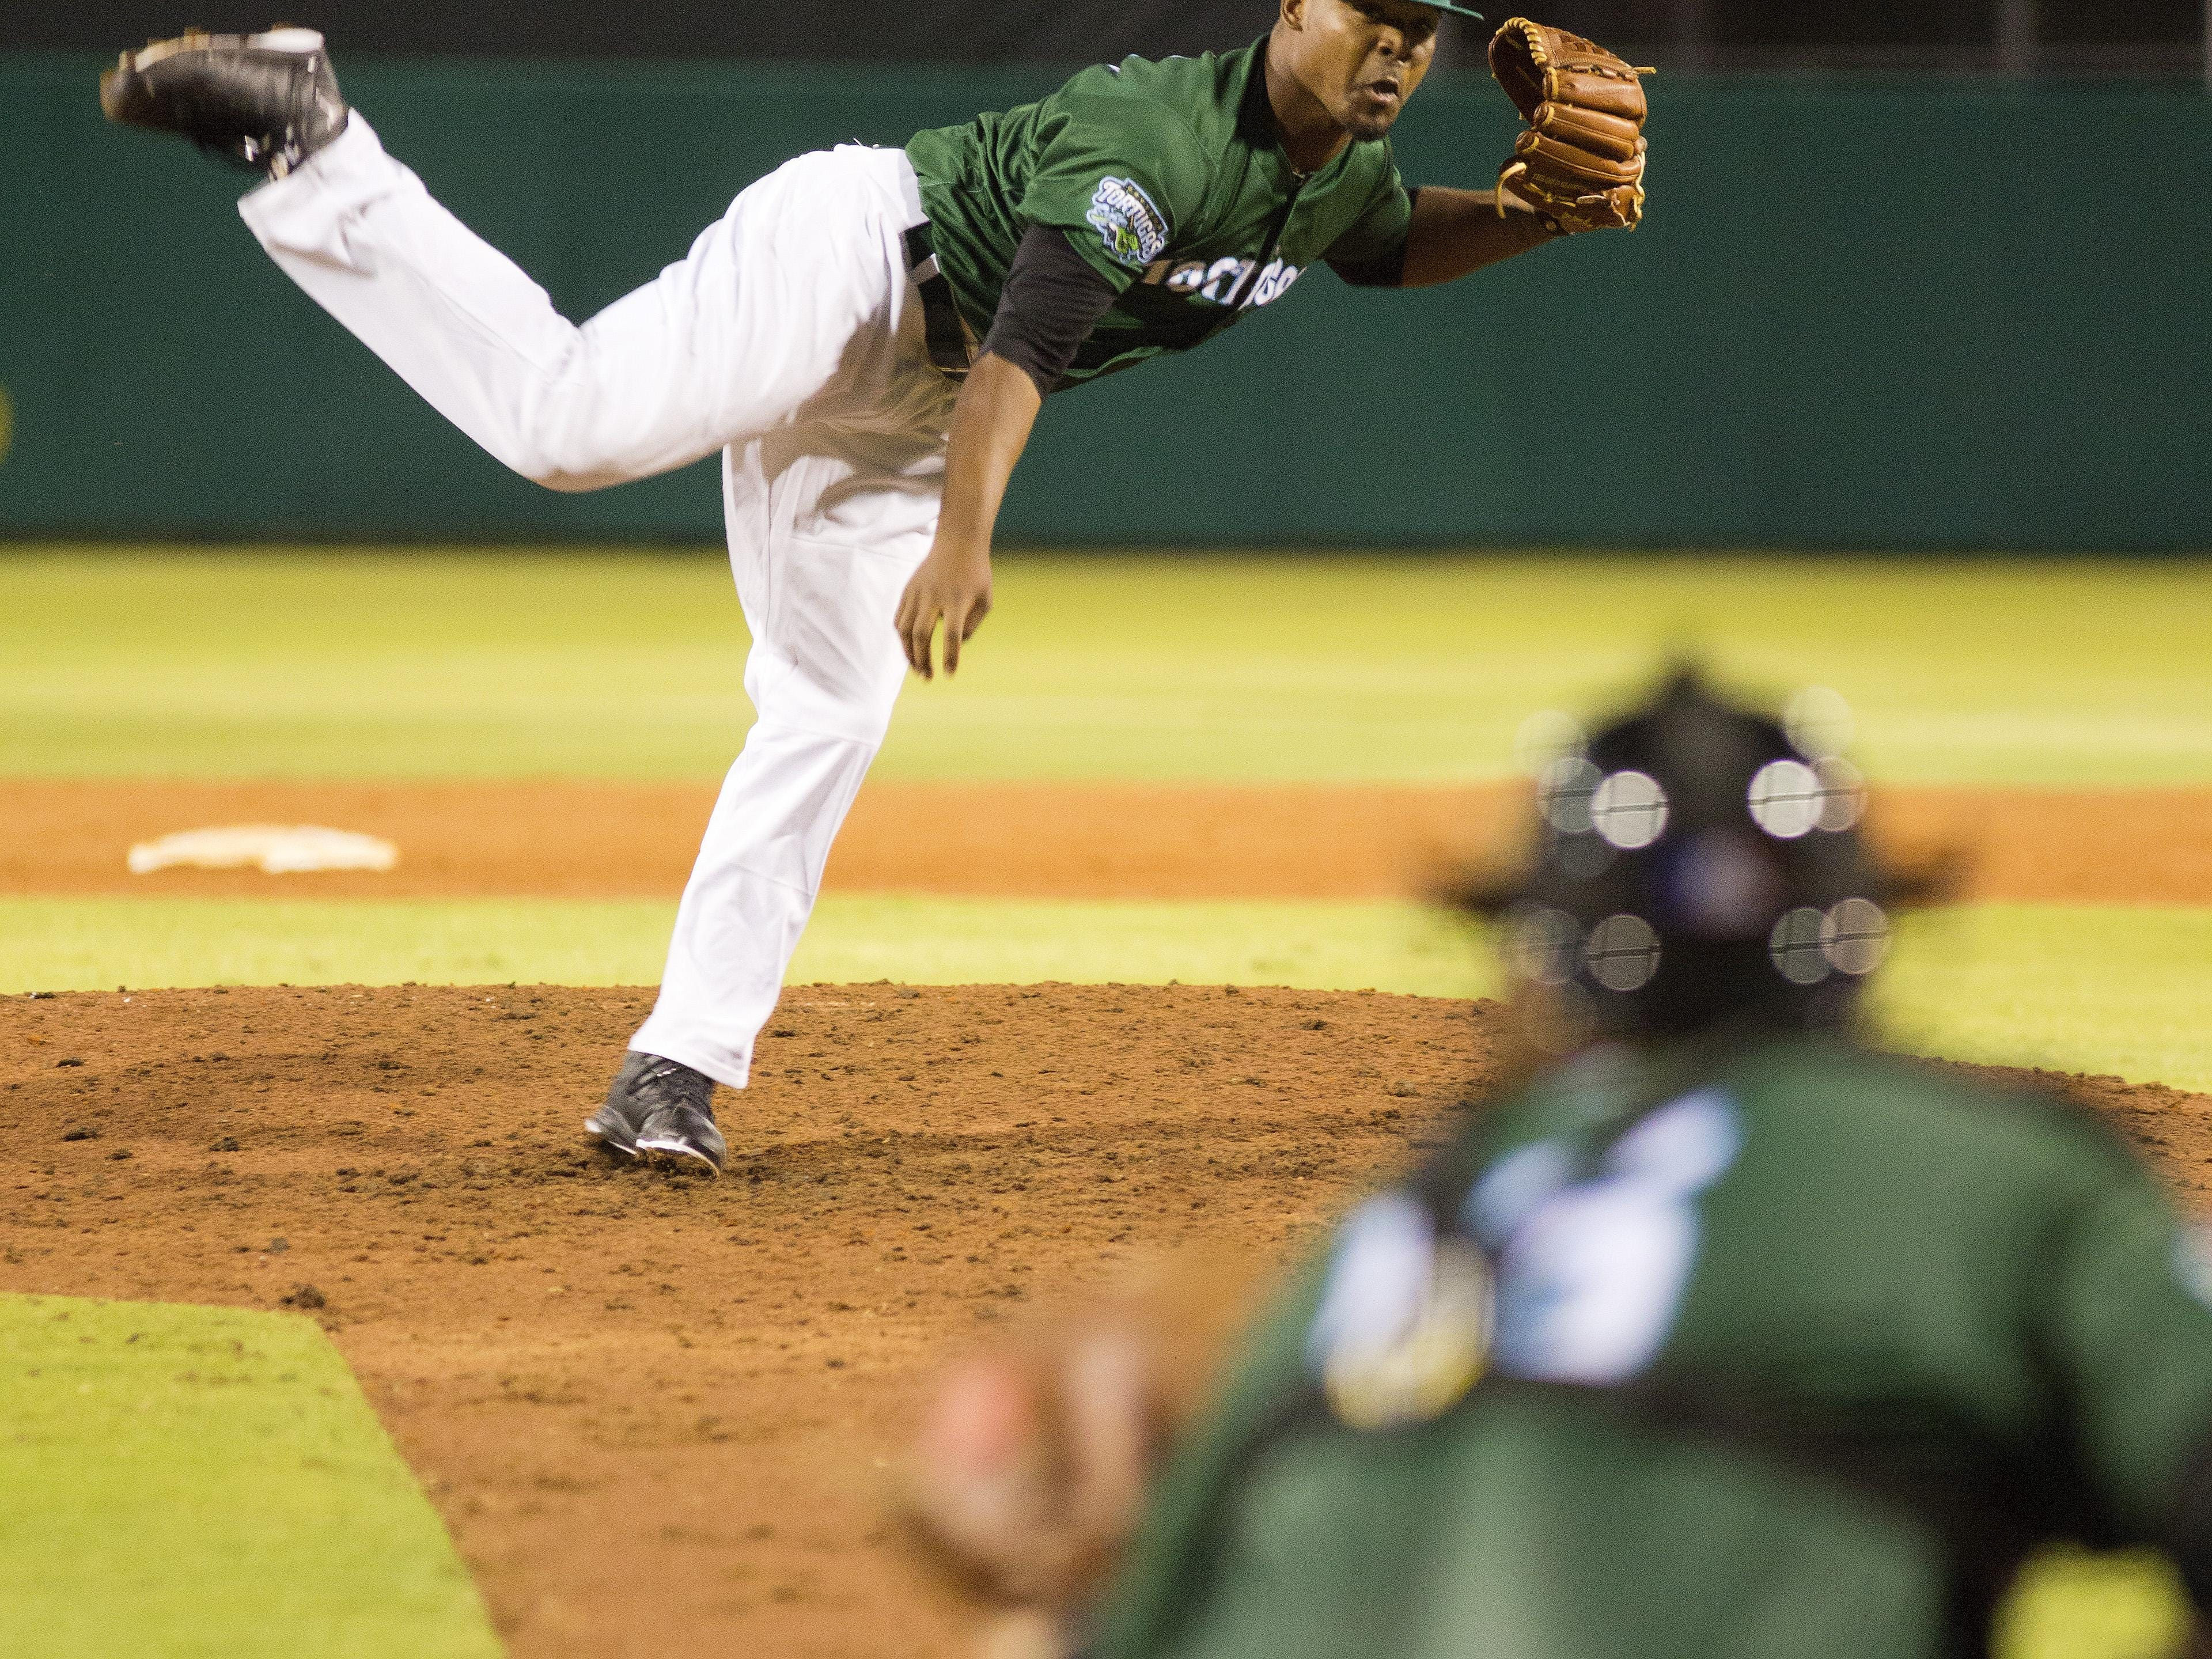 El'Hajj Muhammad, a County College of Morris graduate from Somerset, is a closer for the Daytona Tortugas.